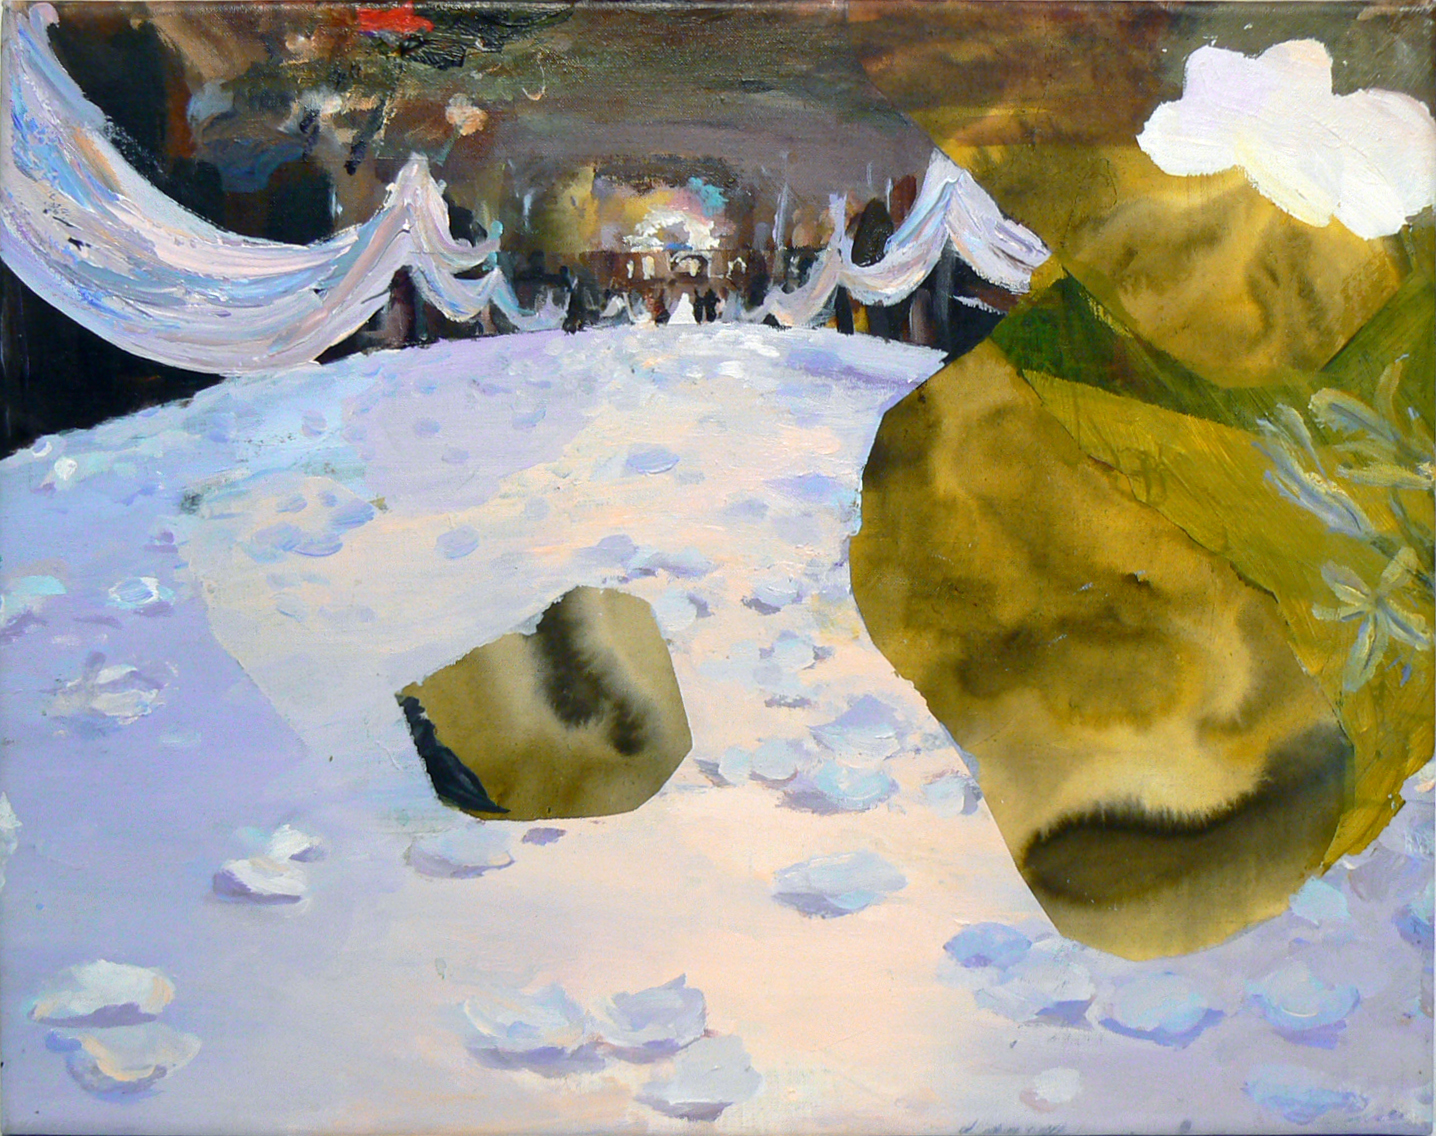 Judith Simonian,  Wedding Hall with Meteors , 2011, Acrylic on canvas, 16h x 20w in.